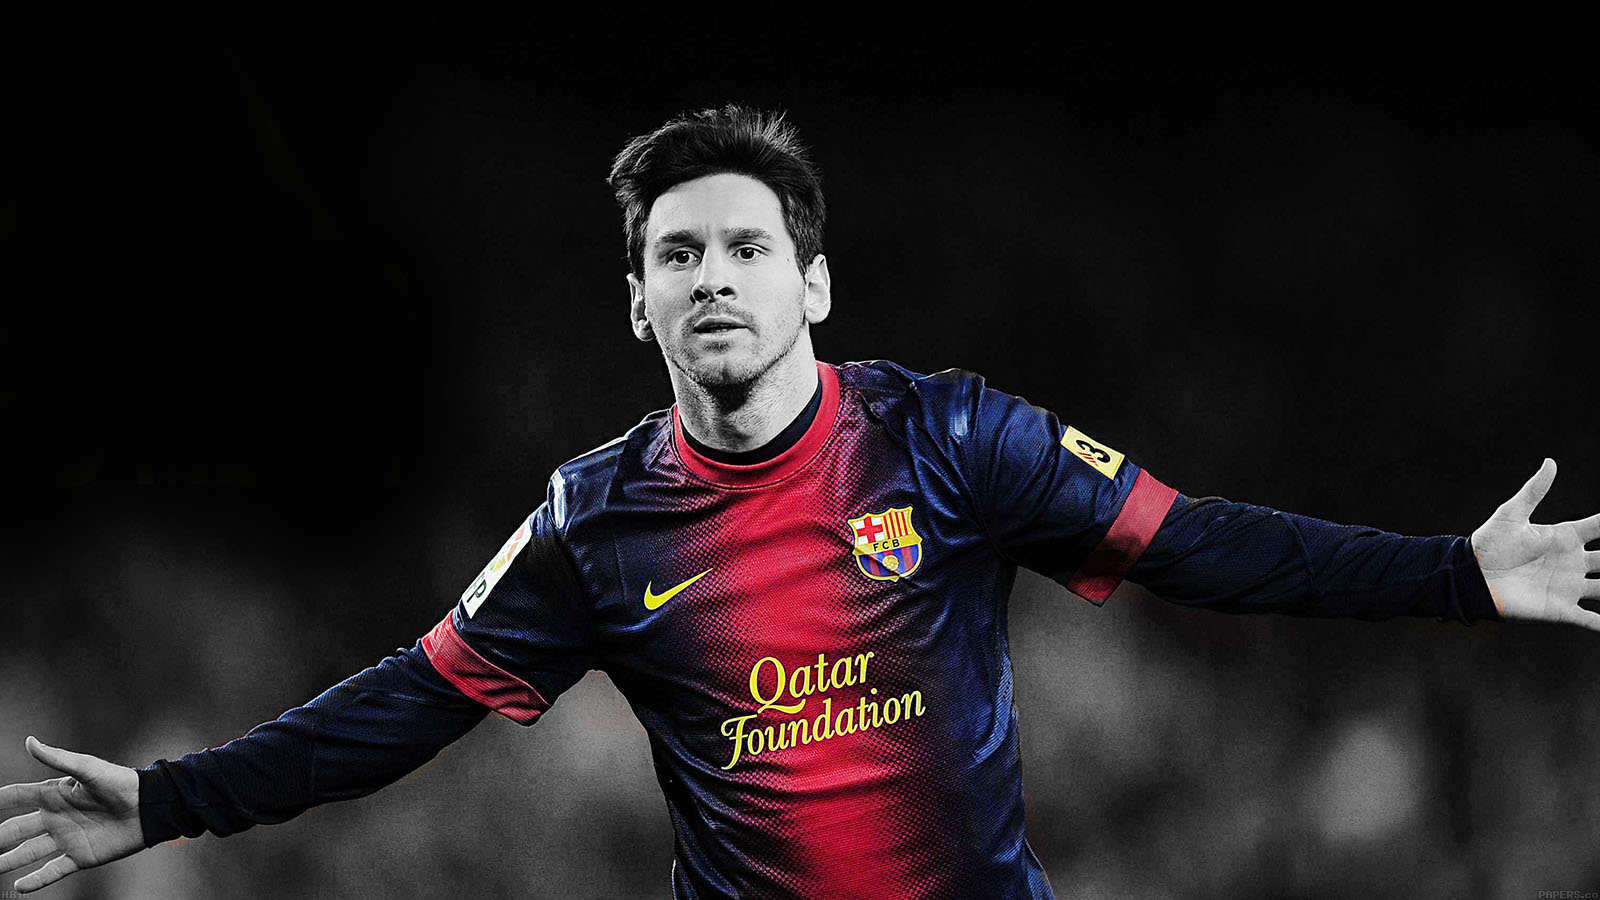 2048x2048 Lionel Messi Ipad Air Hd 4k Wallpapers Images: 1680 X 1050